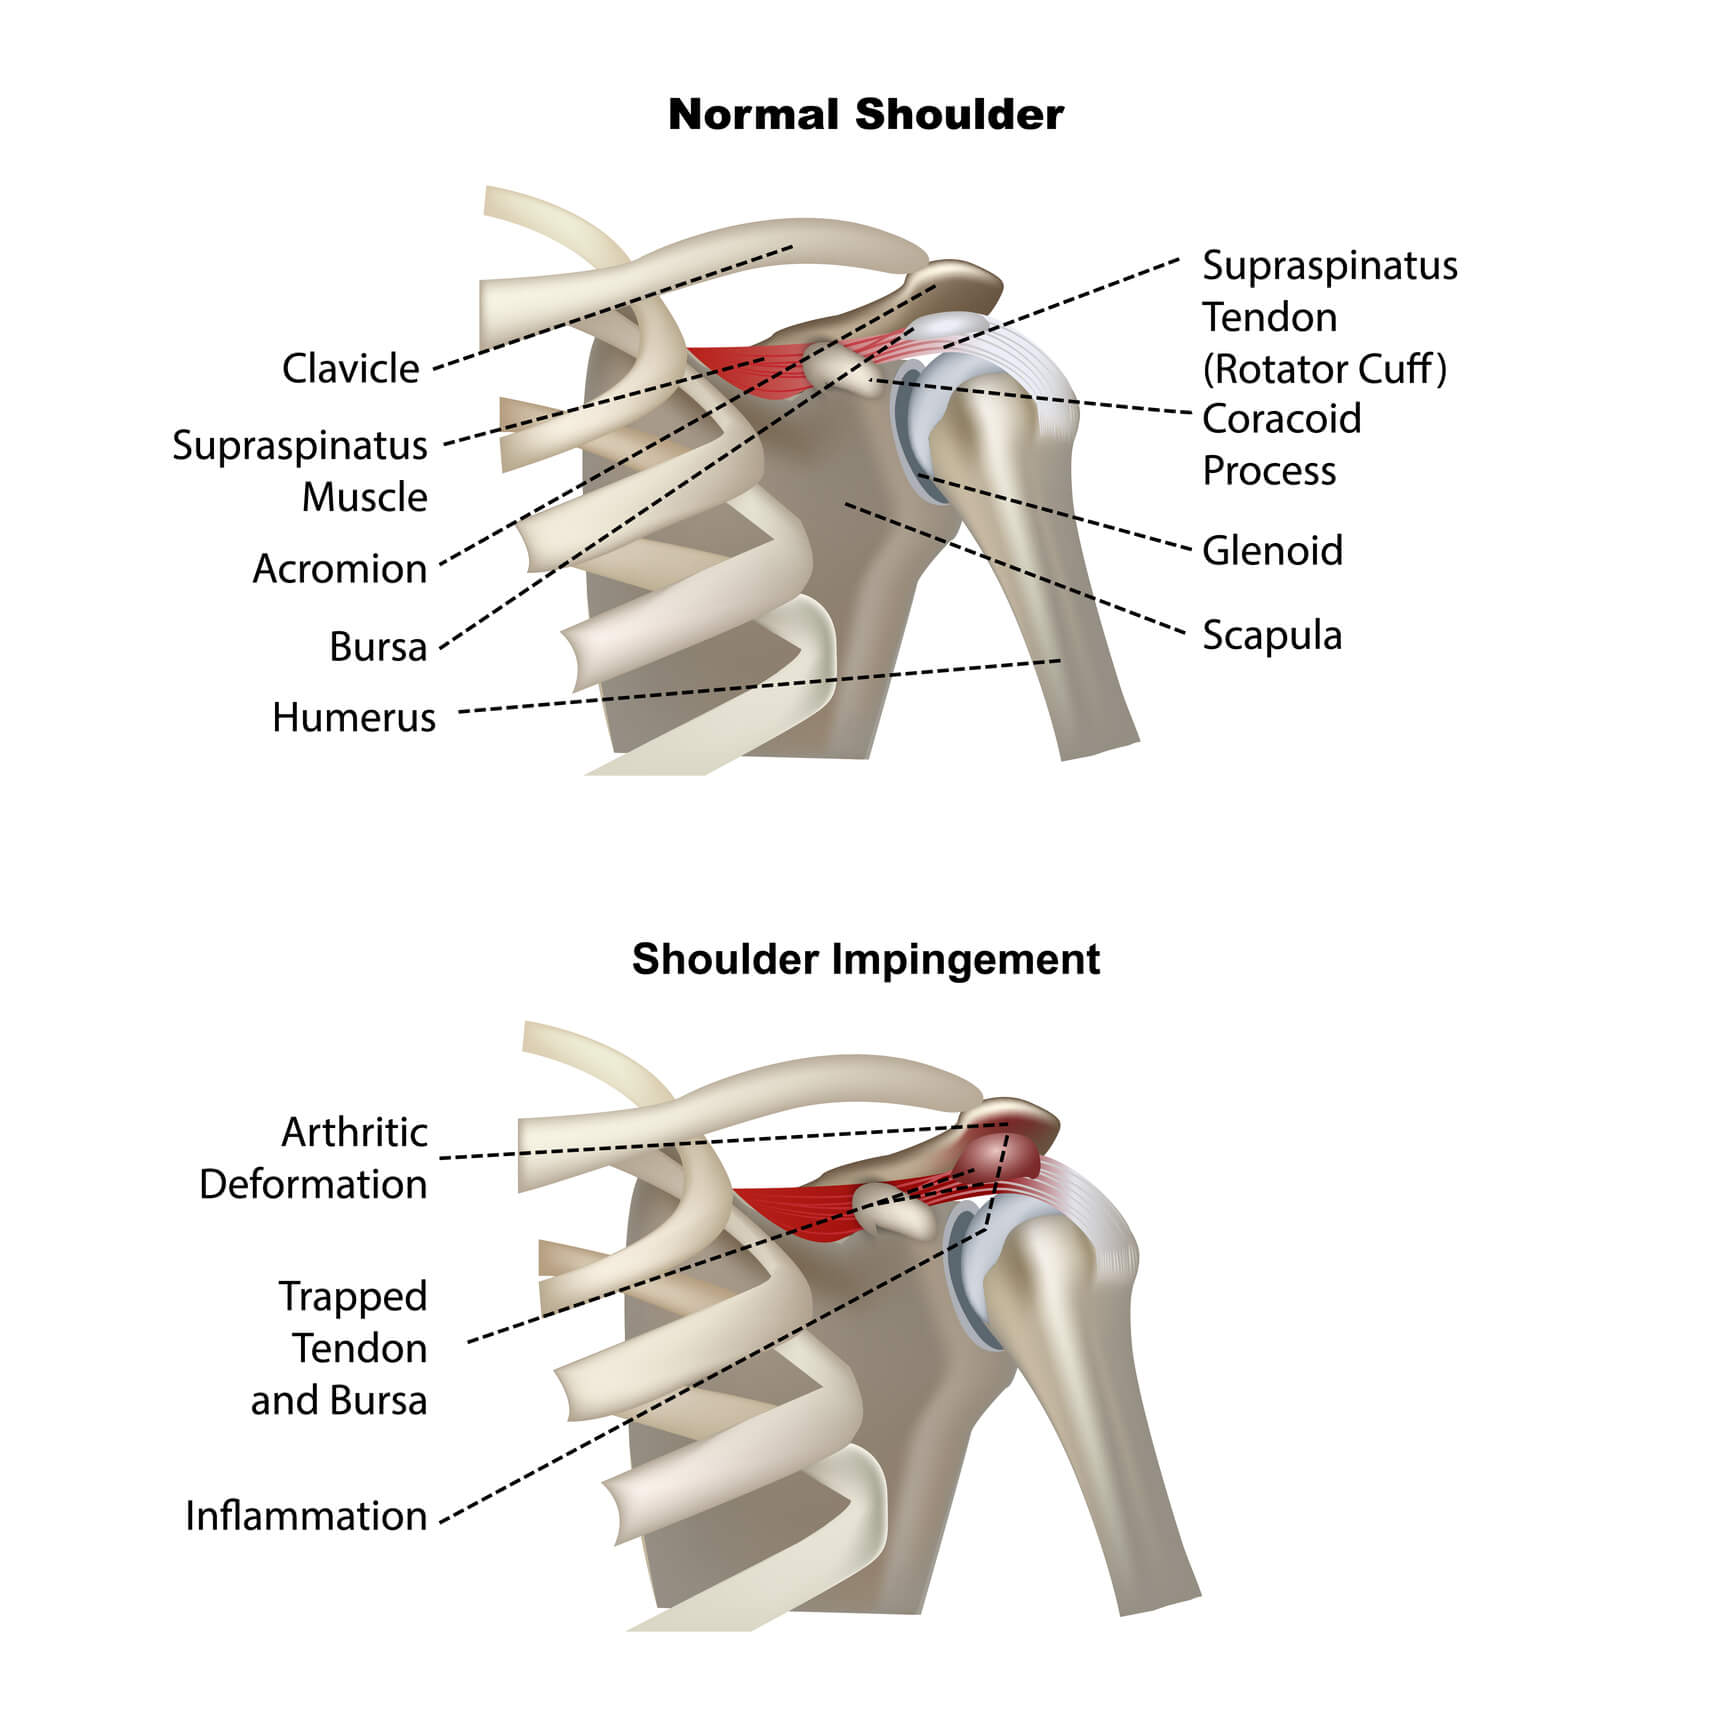 Medical Image showing a healthy shoulder and one affected by shoulder impingement